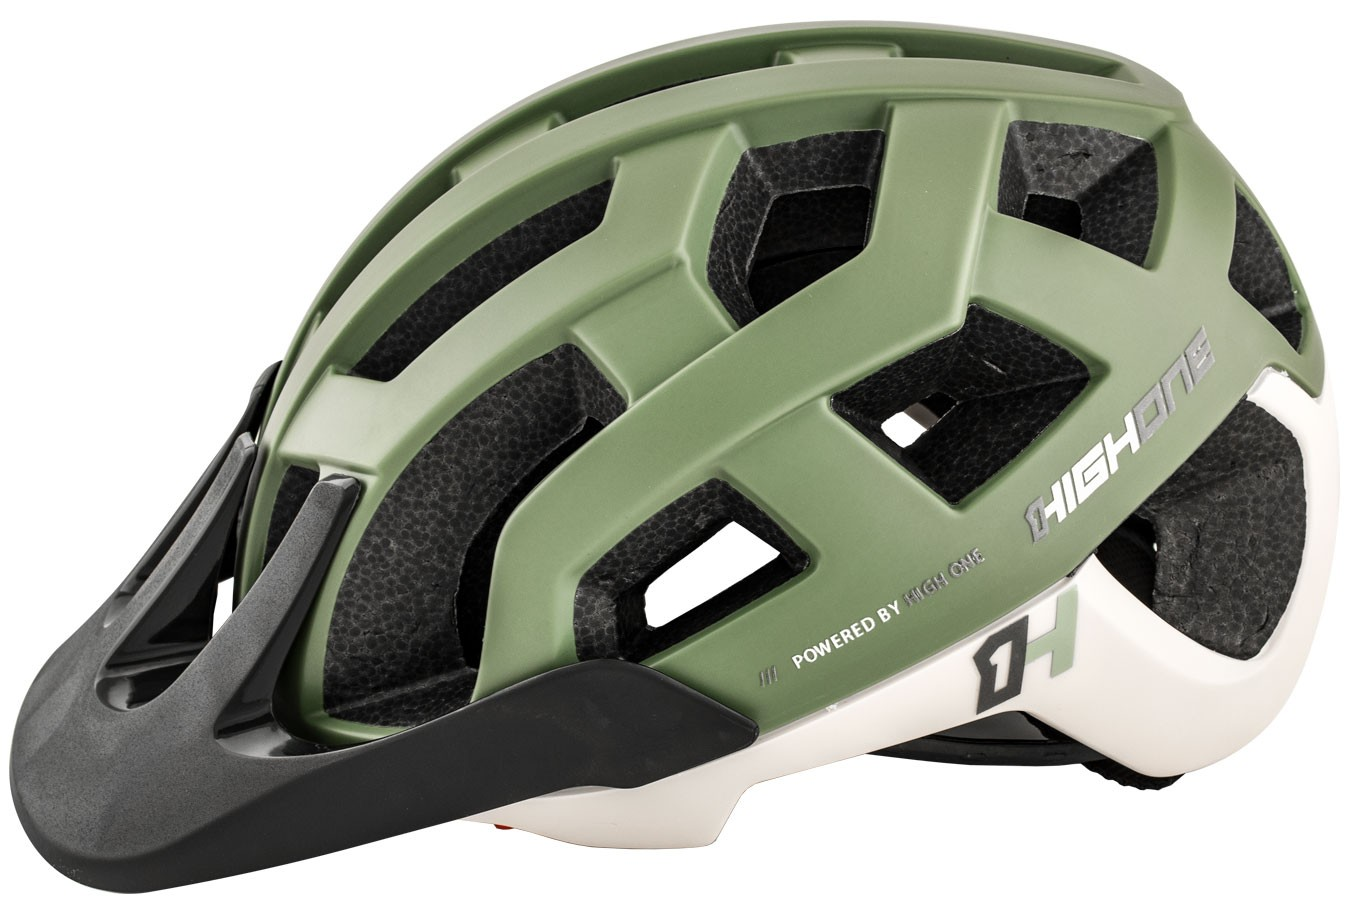 Capacete de ciclista MTB/Speed Cervix Cinza / Verde militar High One